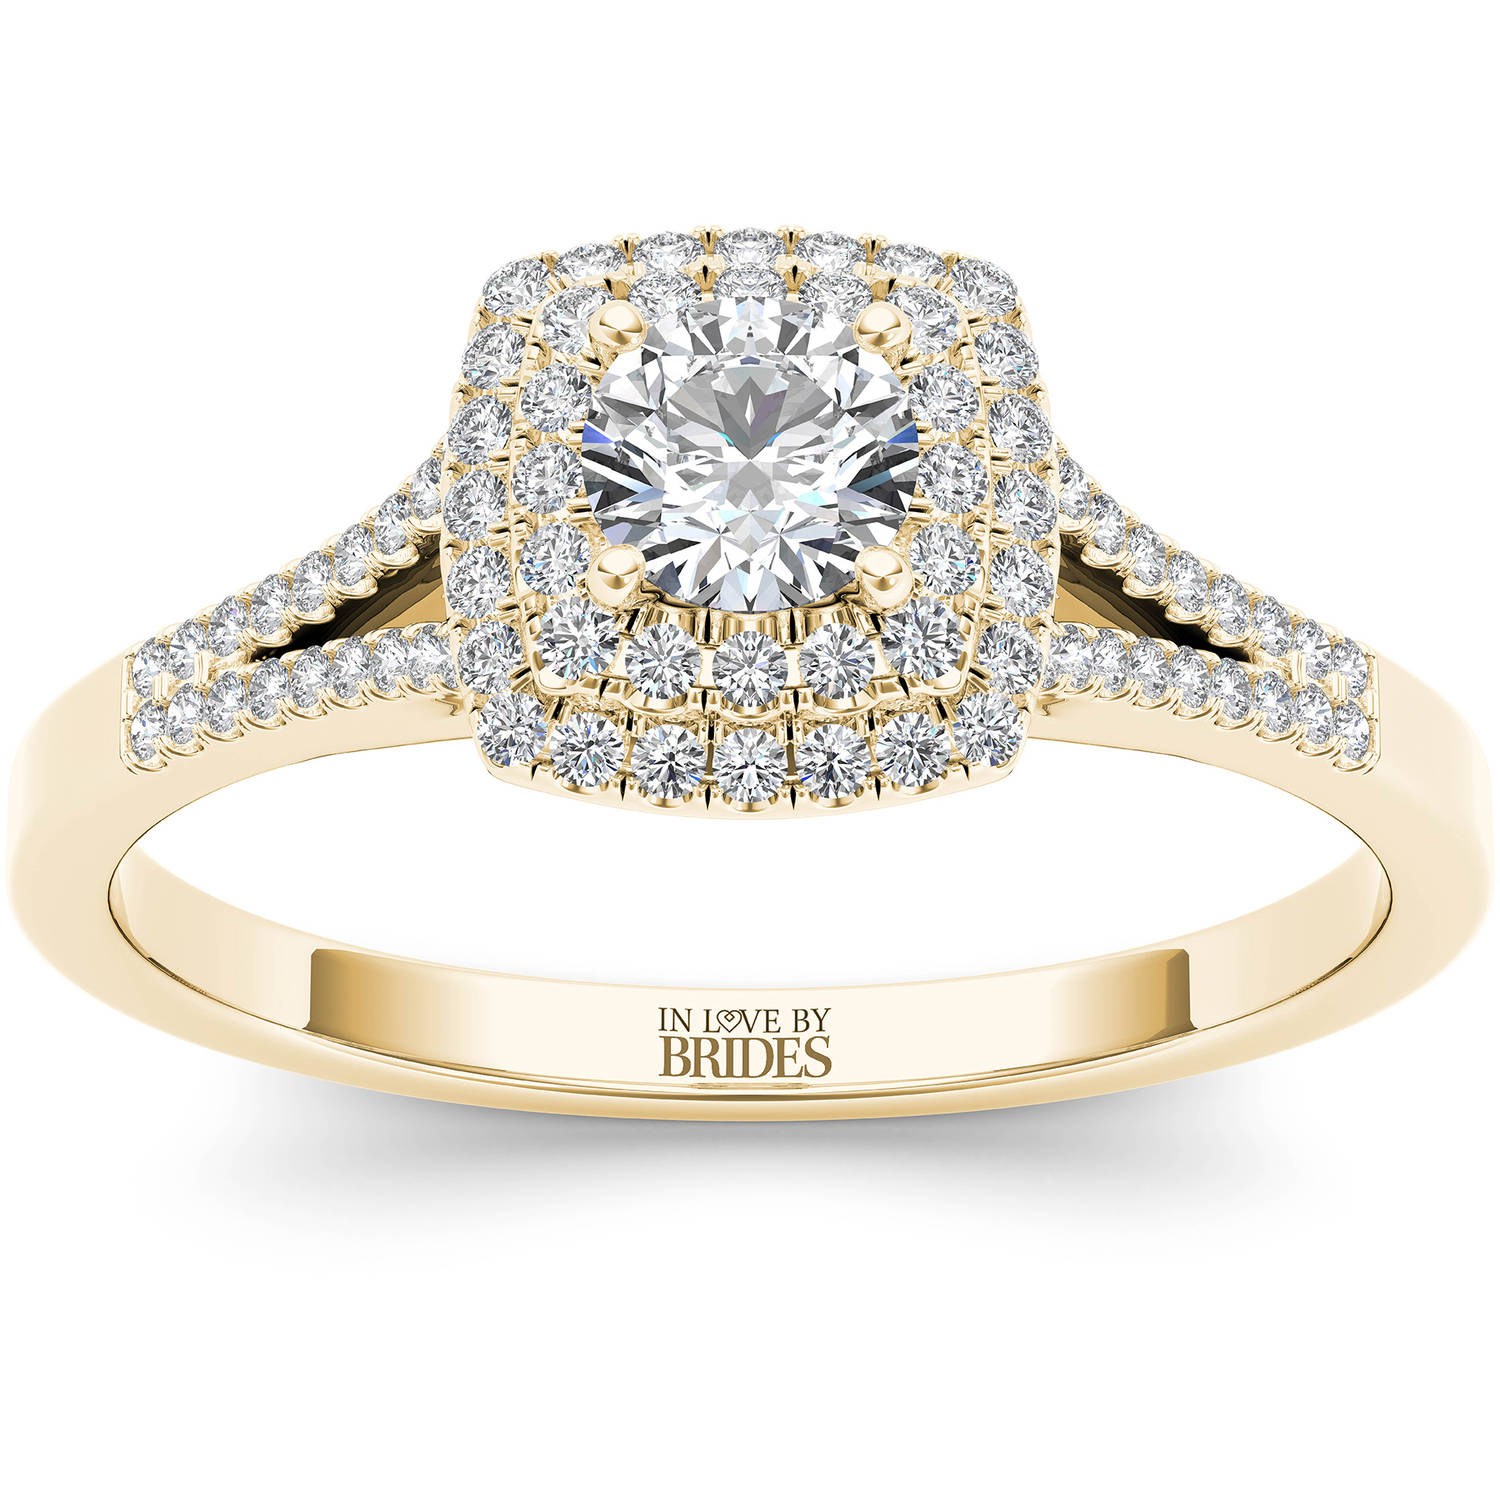 IN LOVE BY BRIDES 1/2 Carat T.W. Certified Diamond Double Halo 14kt Yellow Gold Engagement Ring